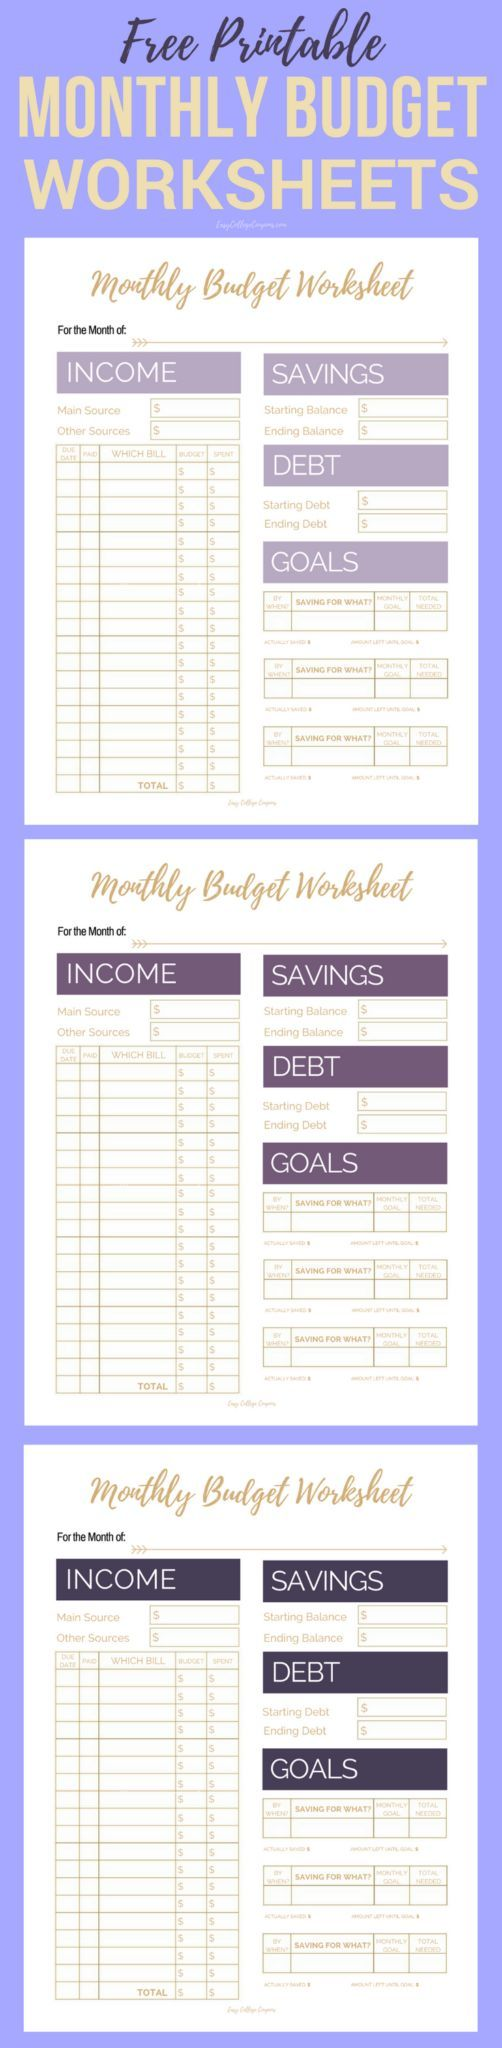 Free Printable Budget Sheets, Worksheets, Planner | Simple College Budgeting | Finance, Saving Money